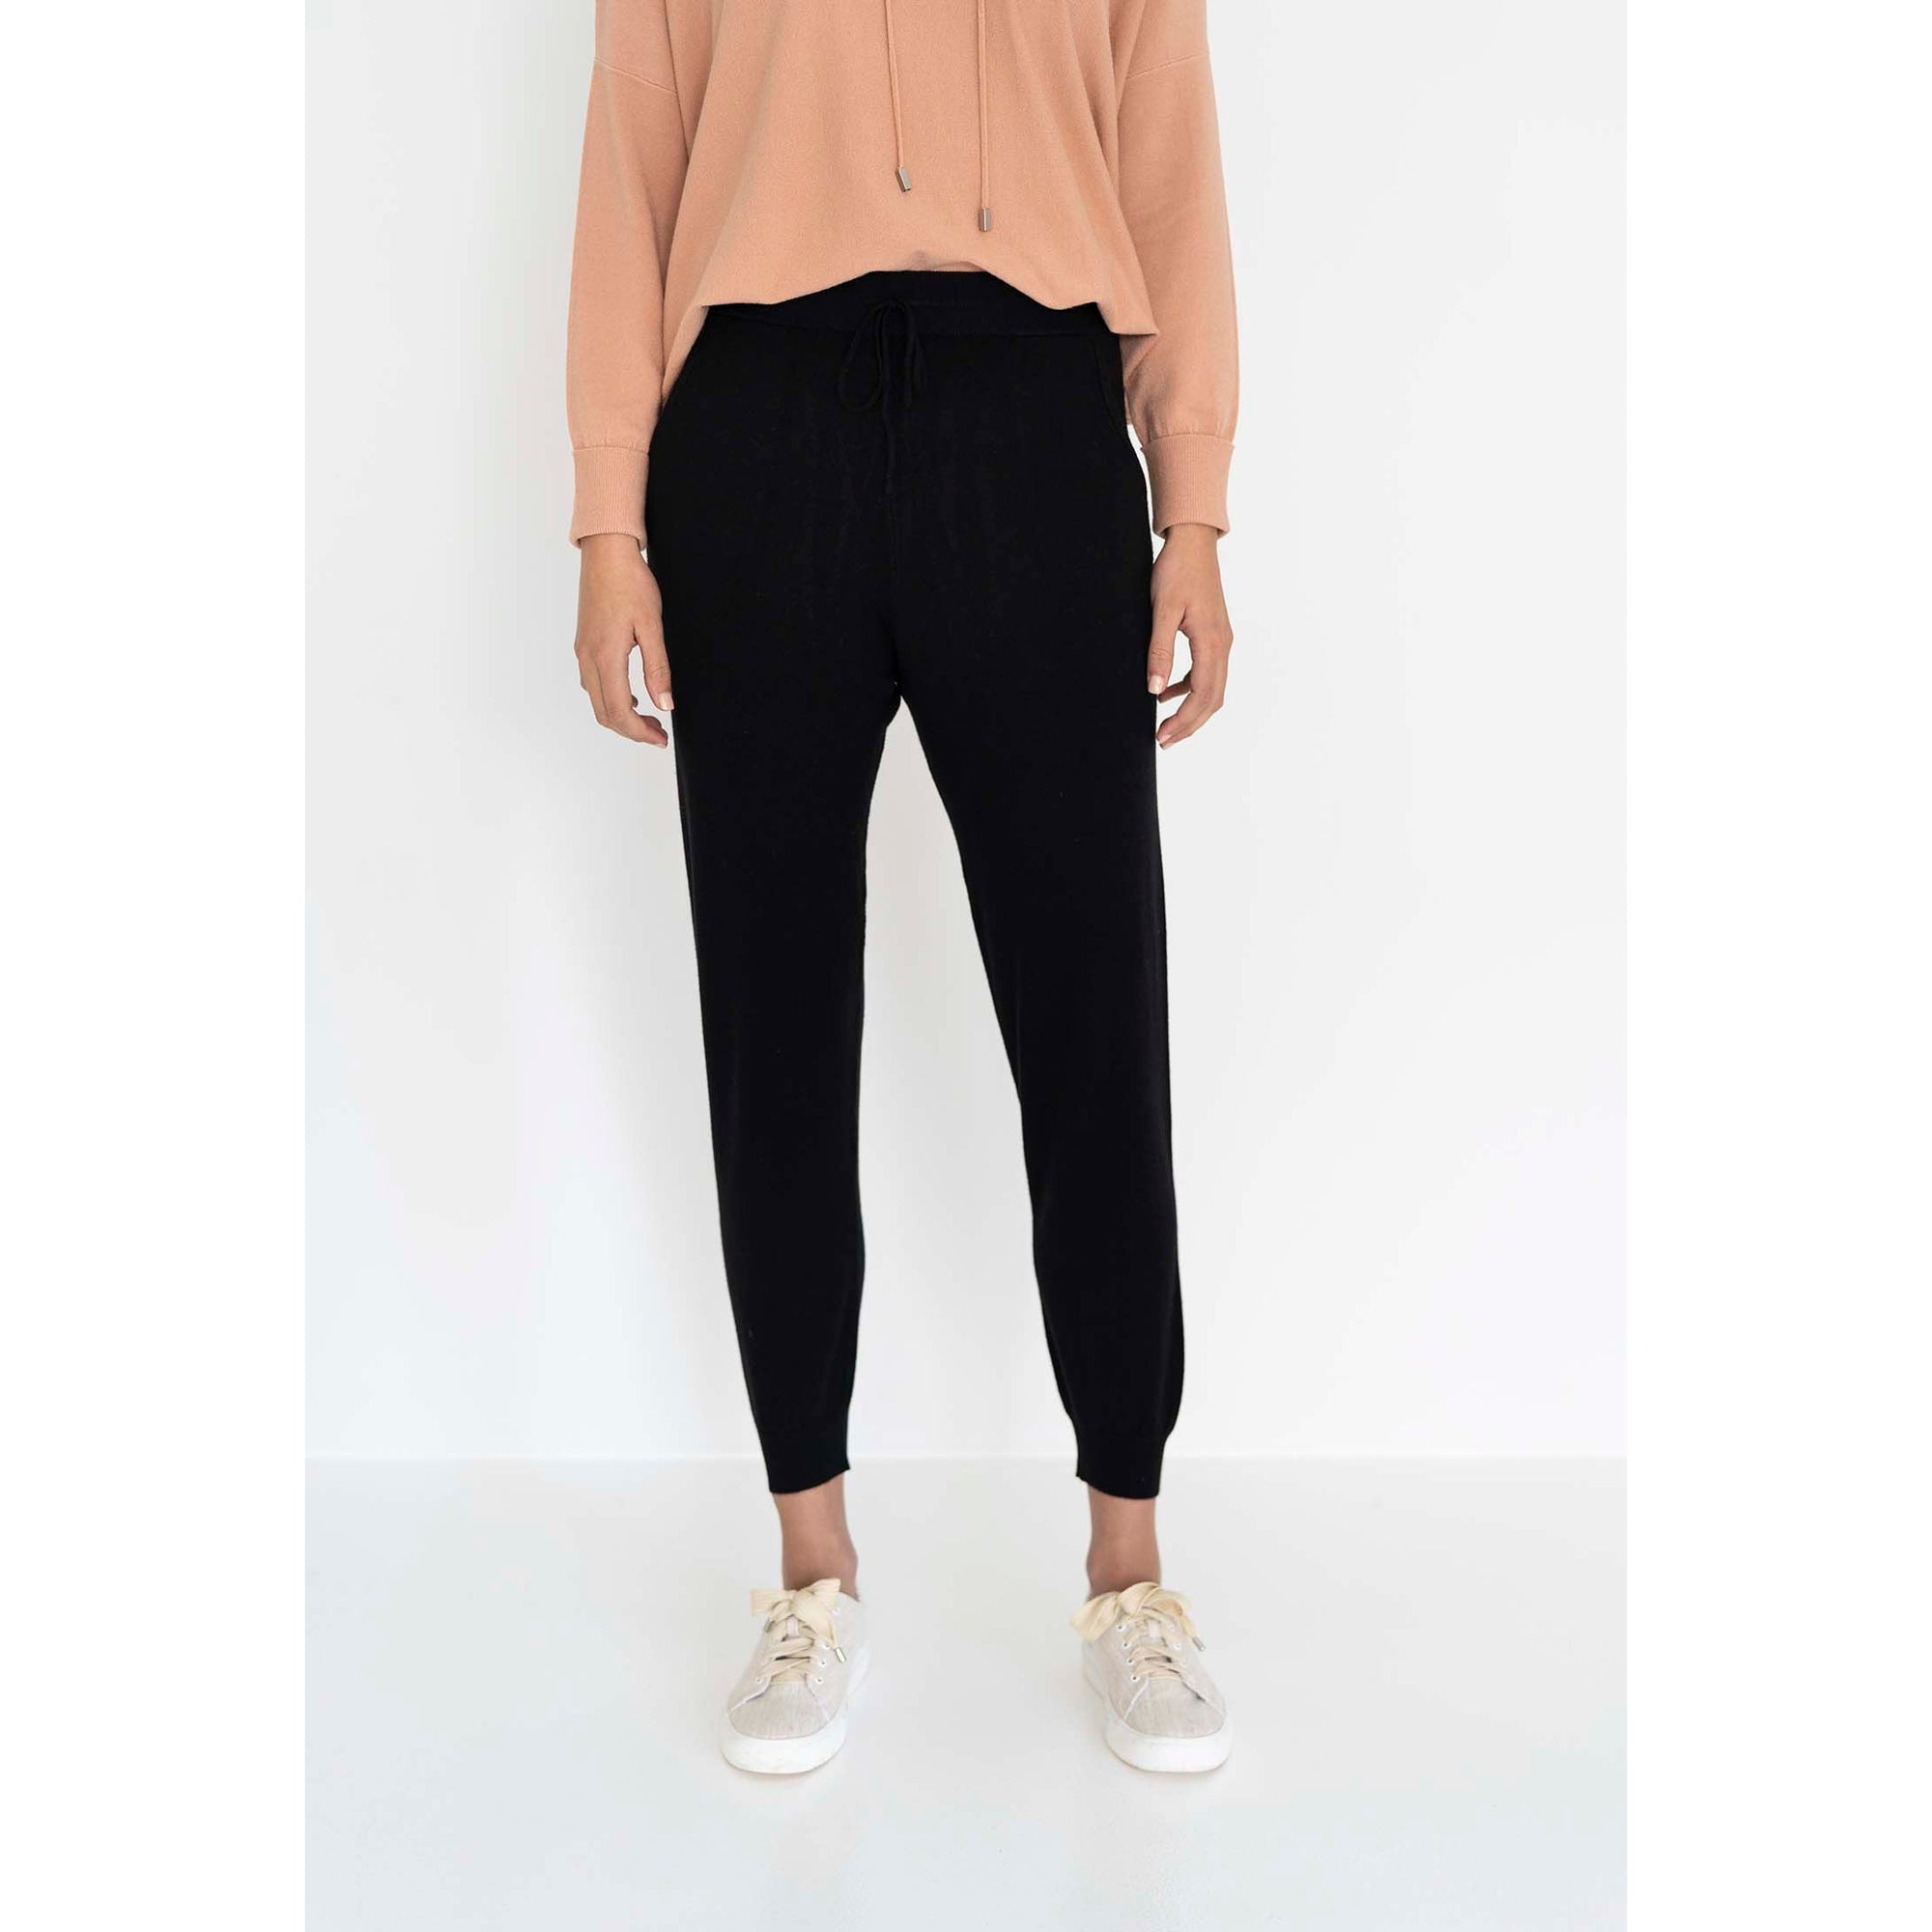 Humidity Lounge Pant in Black